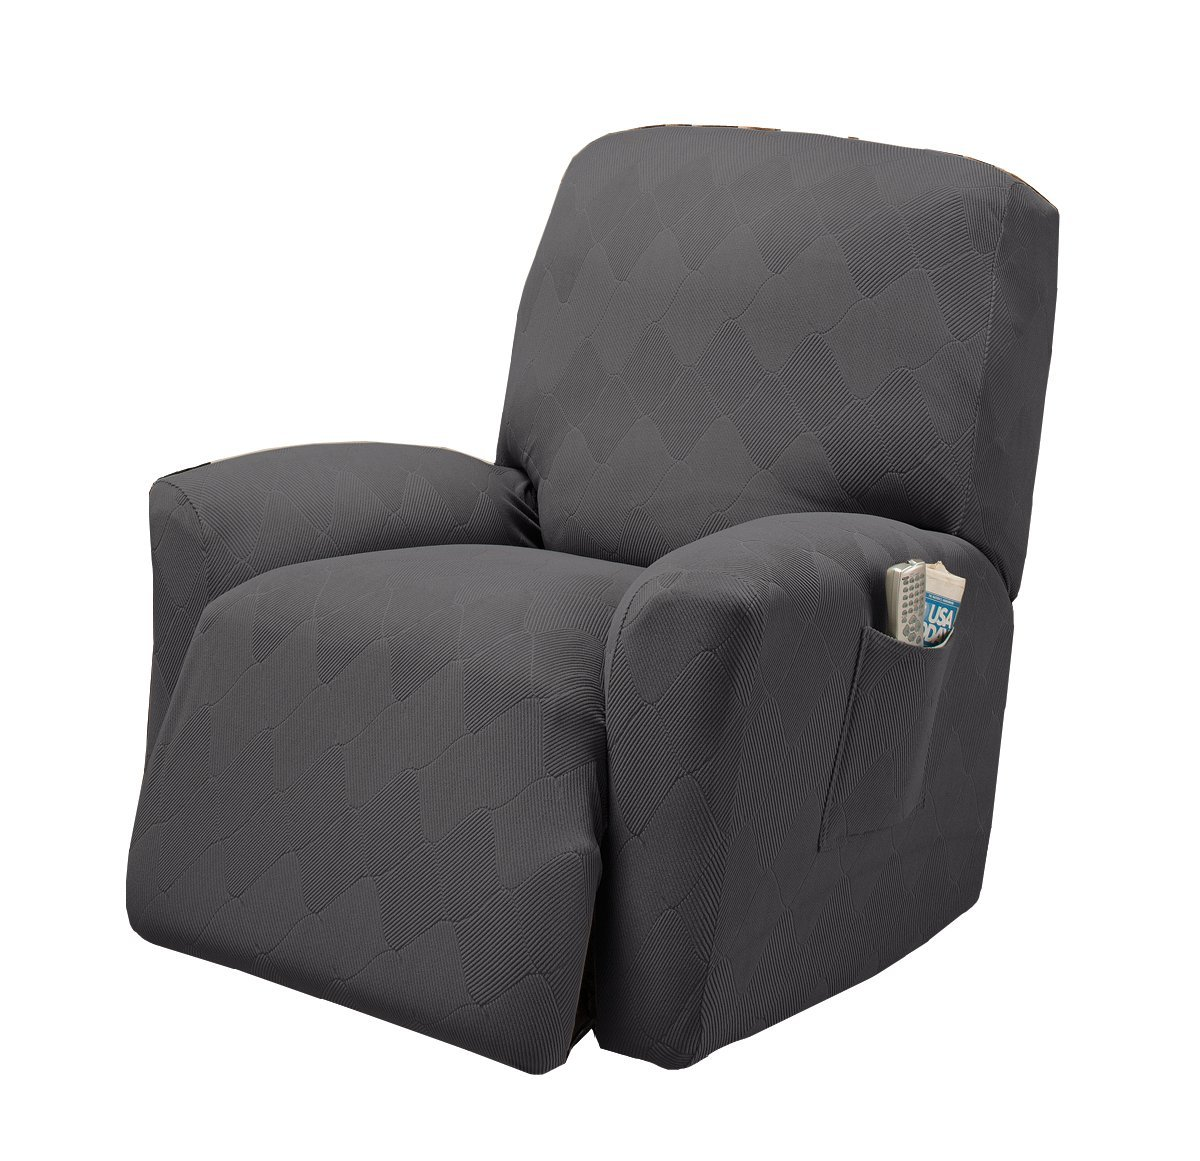 Stretch Sensations Optic Recliner Stretch Slipcover, Gray by Stretch Sensations